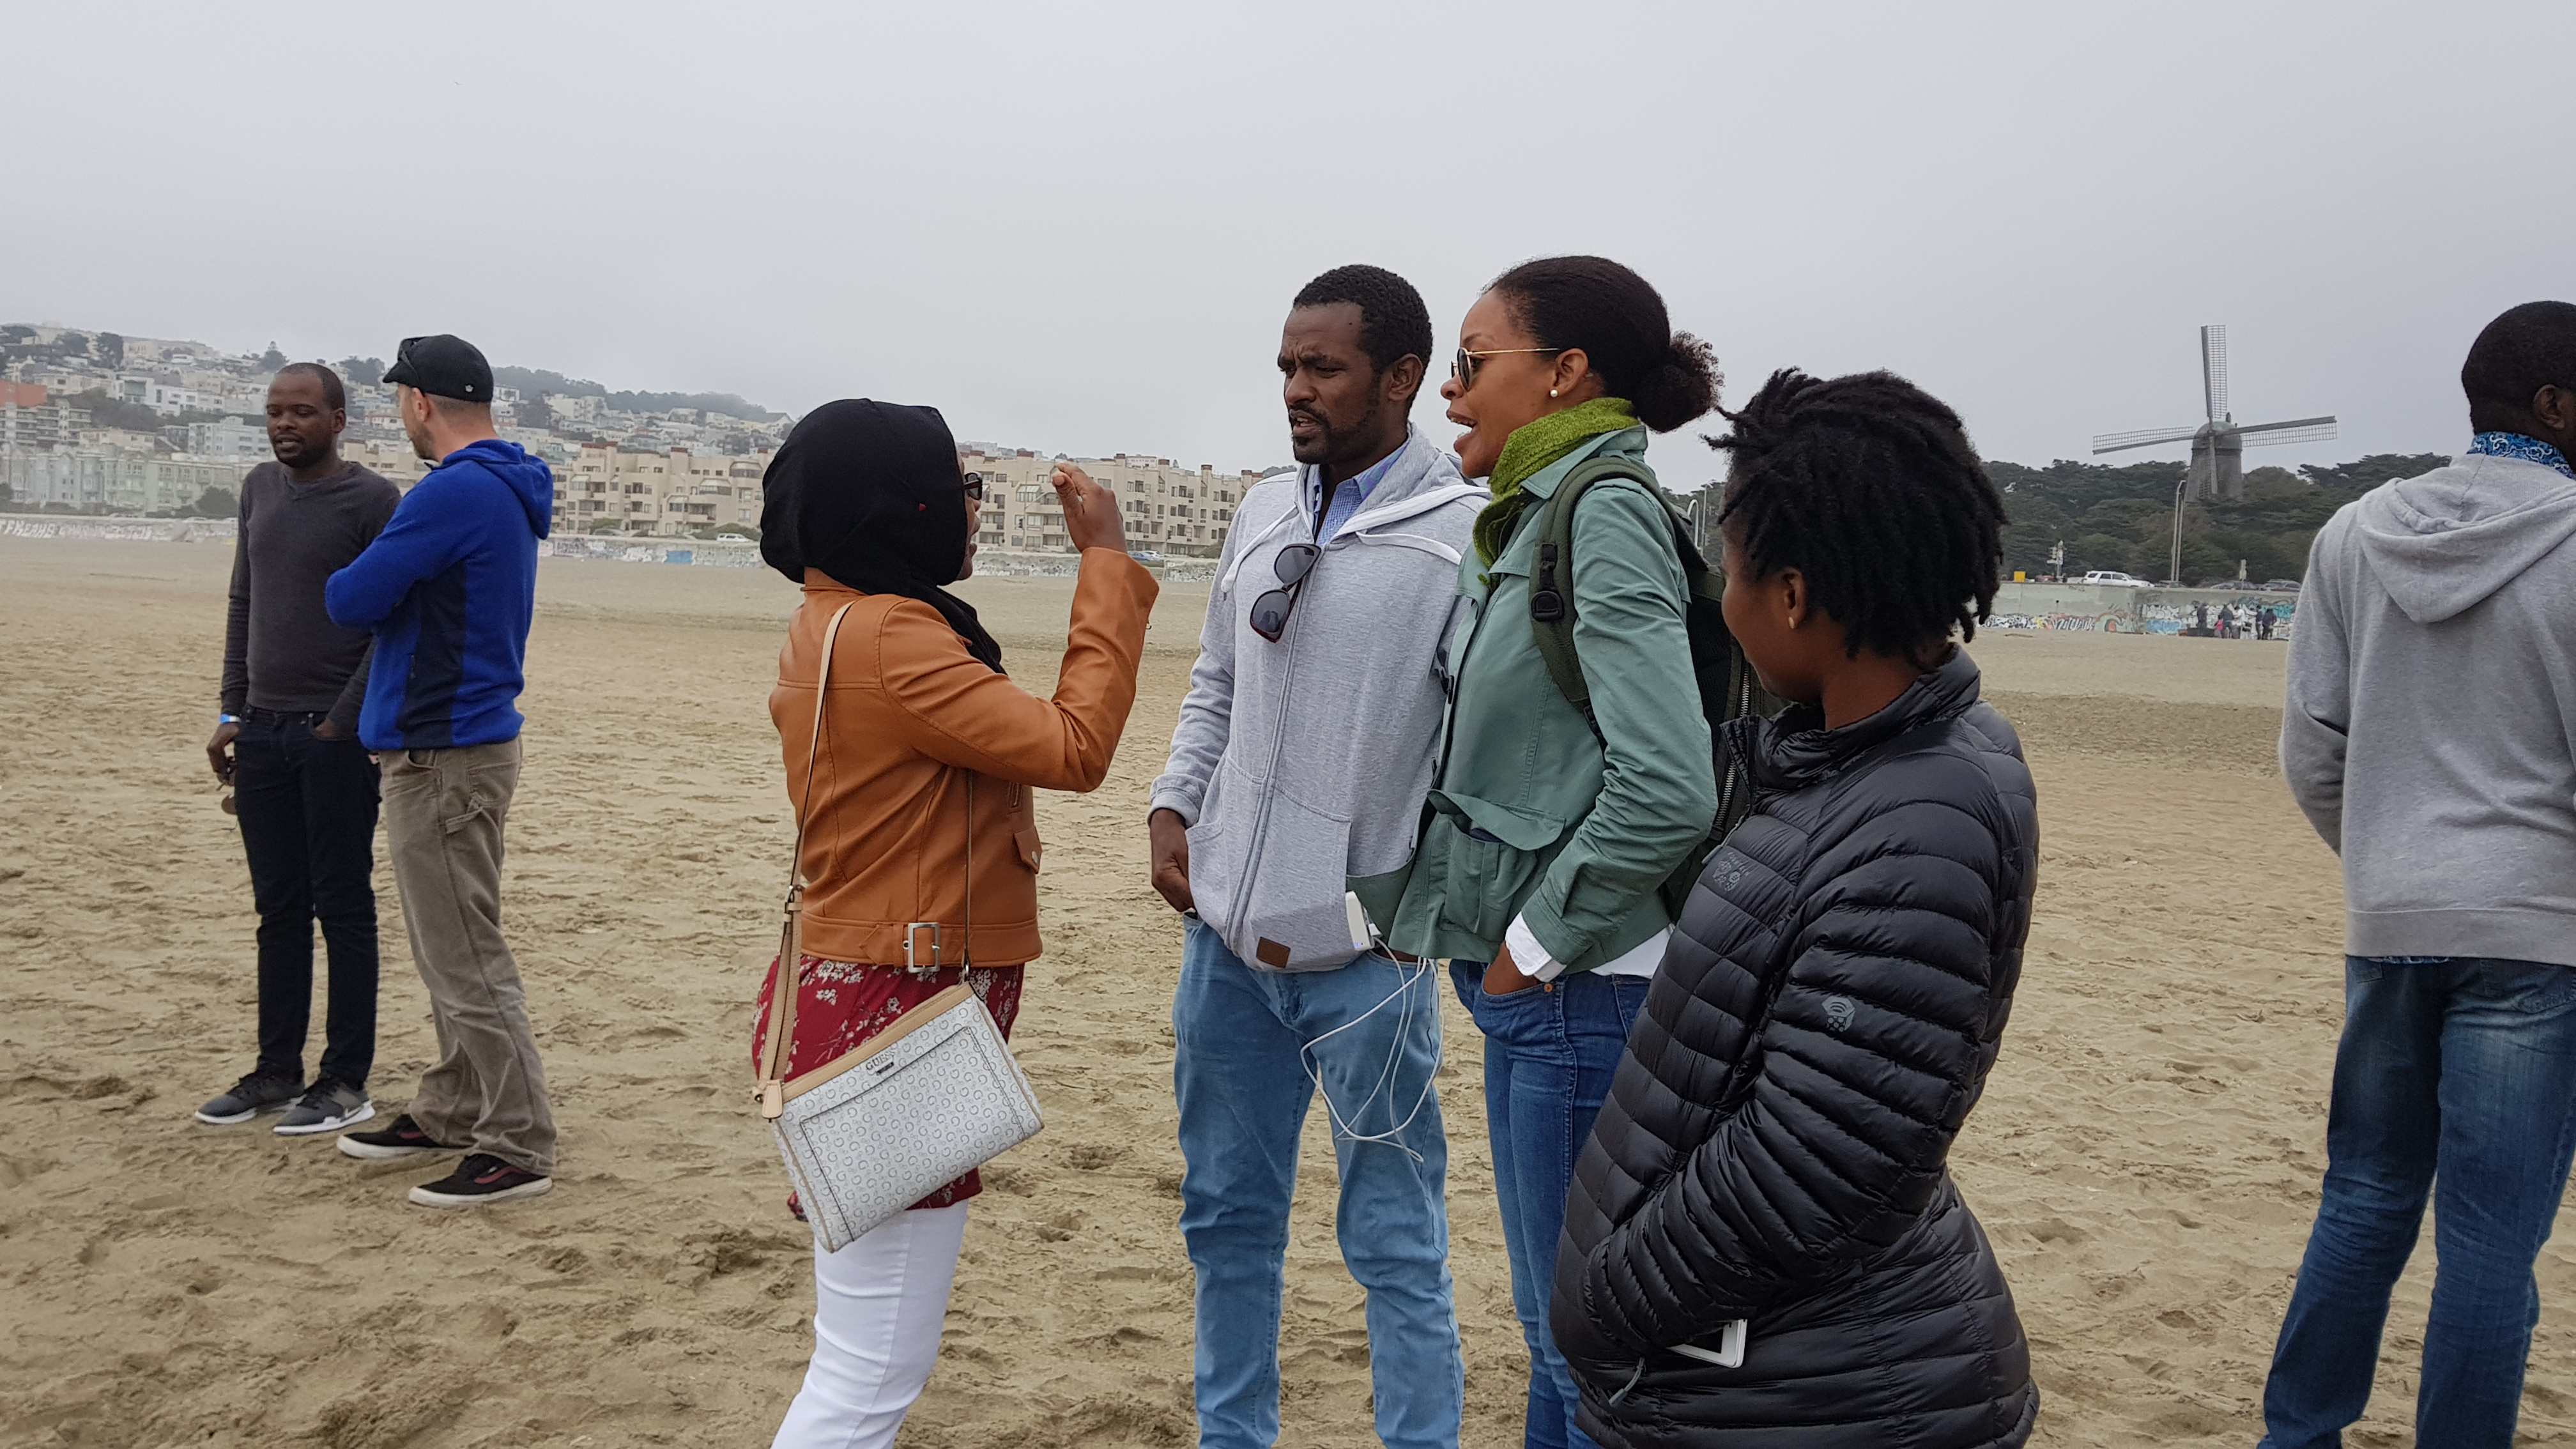 DiscussionatBeach